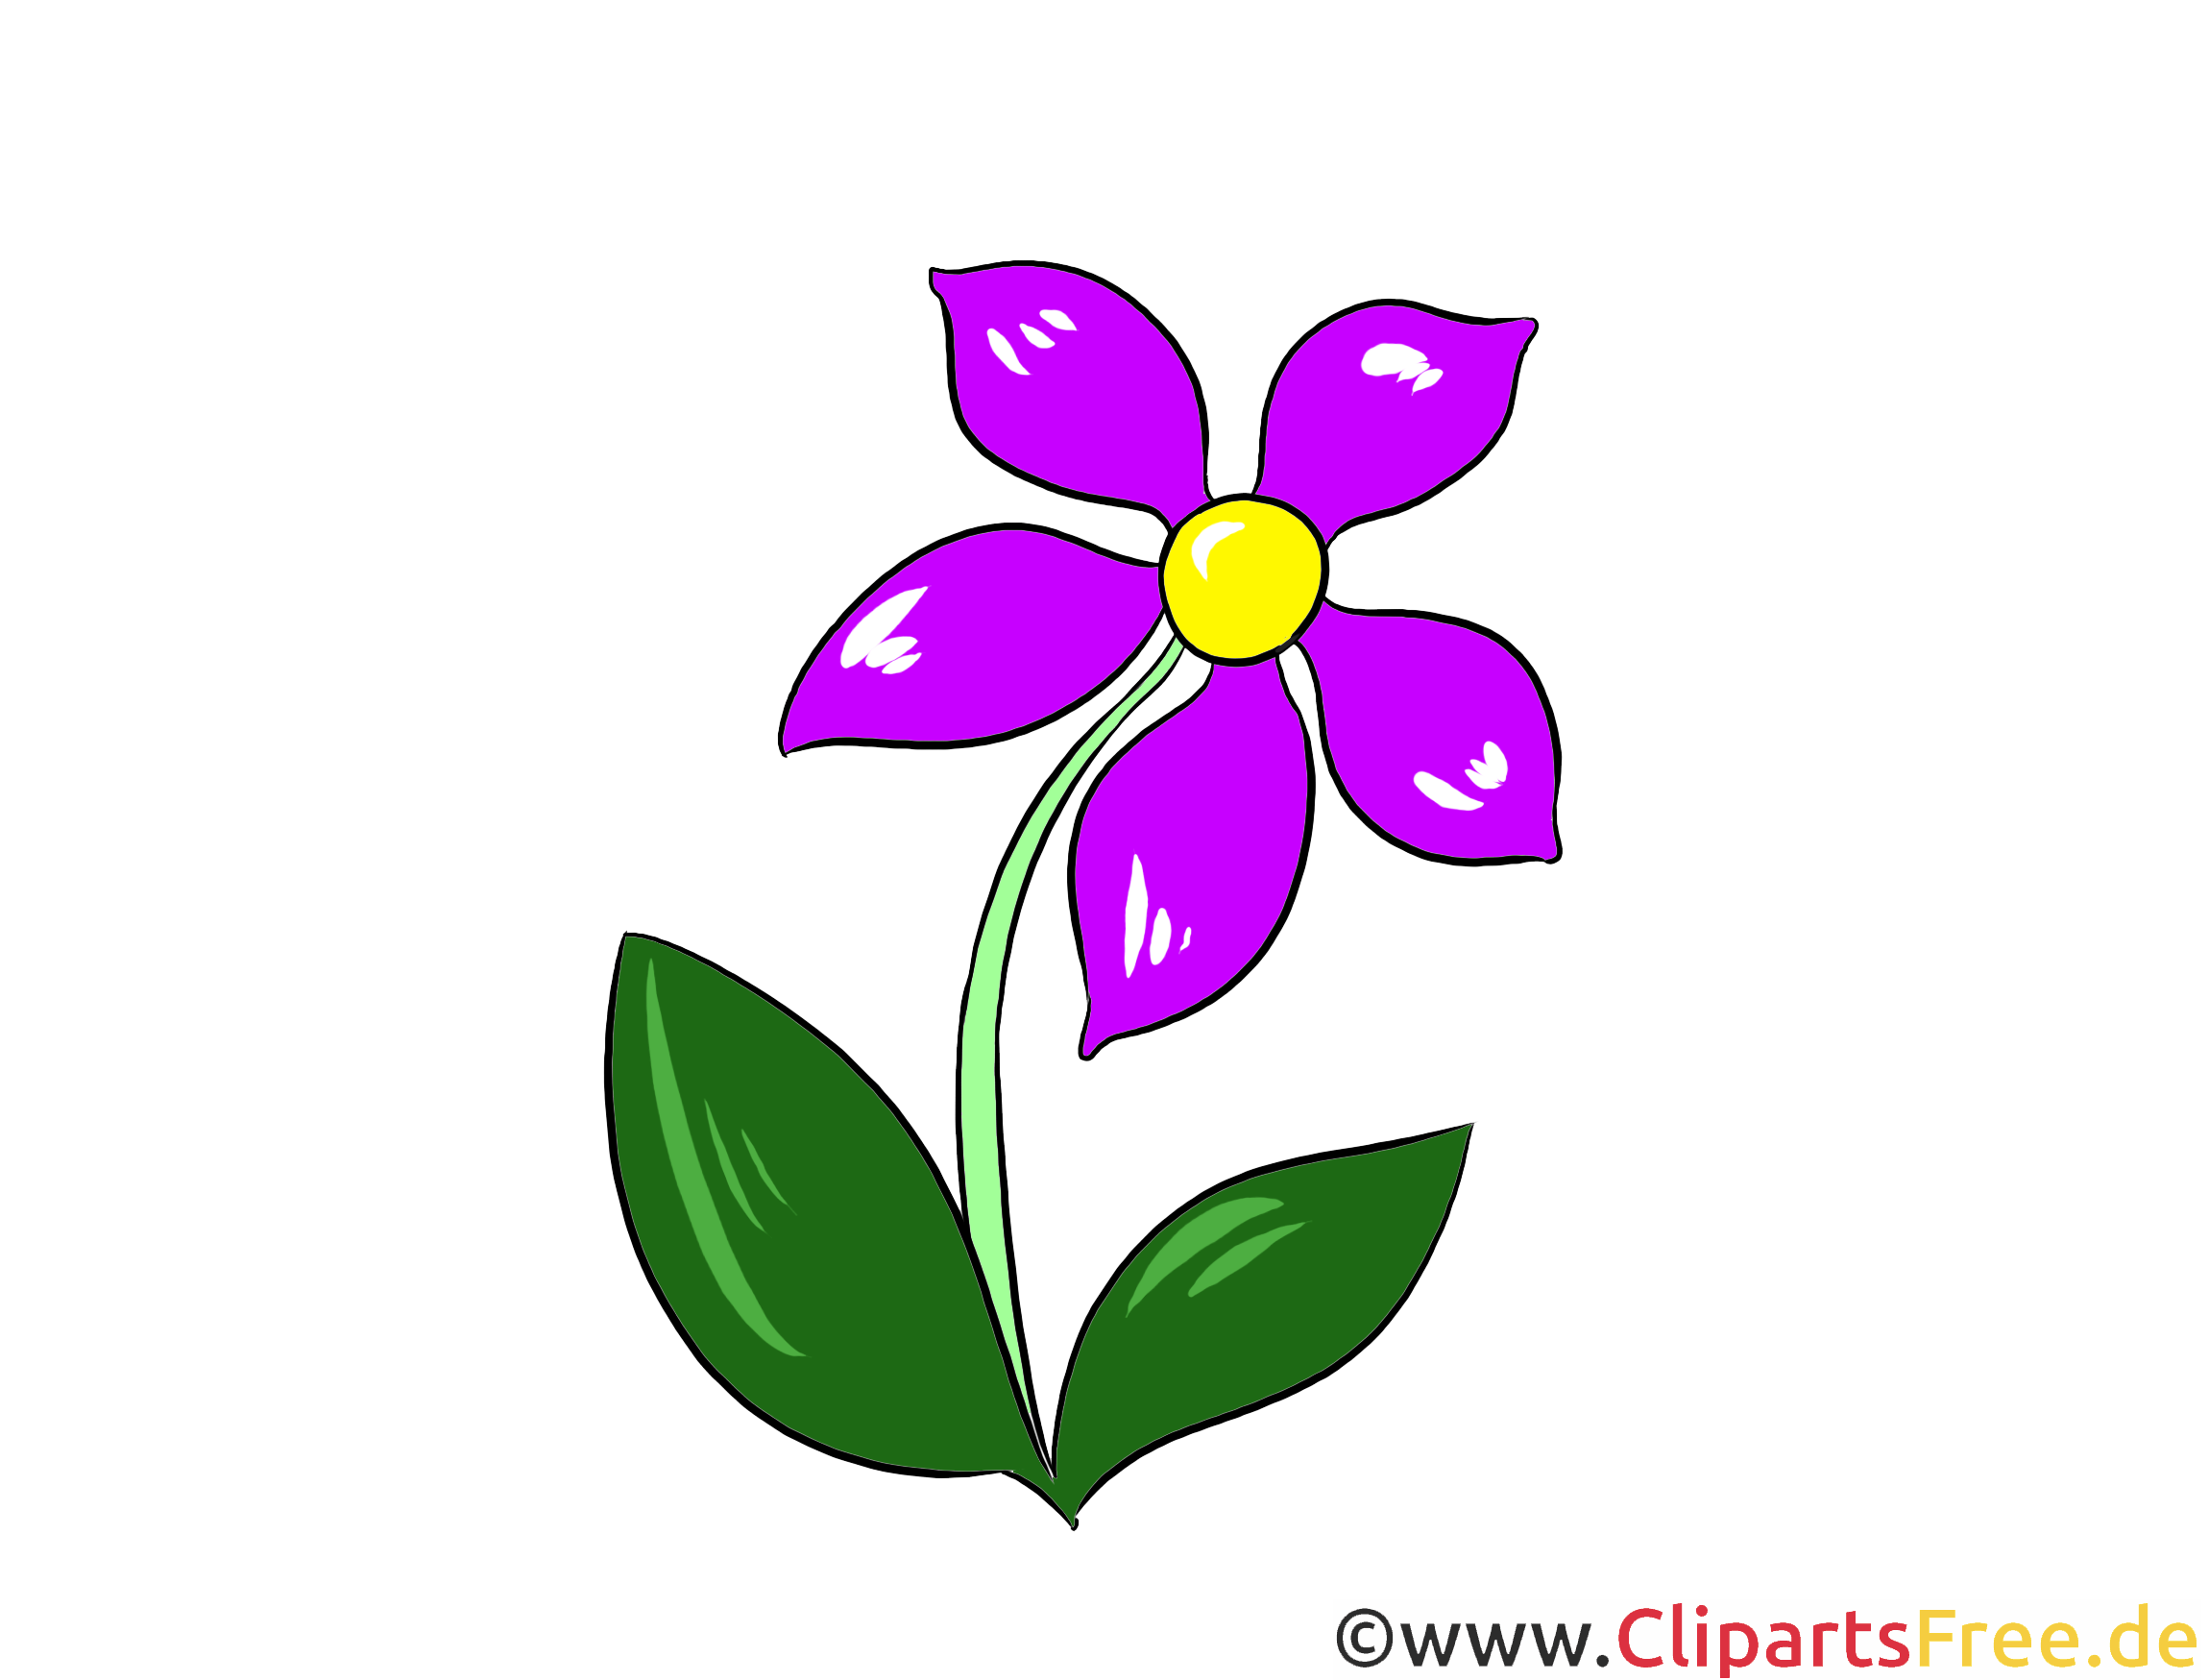 Clipart, Illustration, Bild Wiesen-Margerite